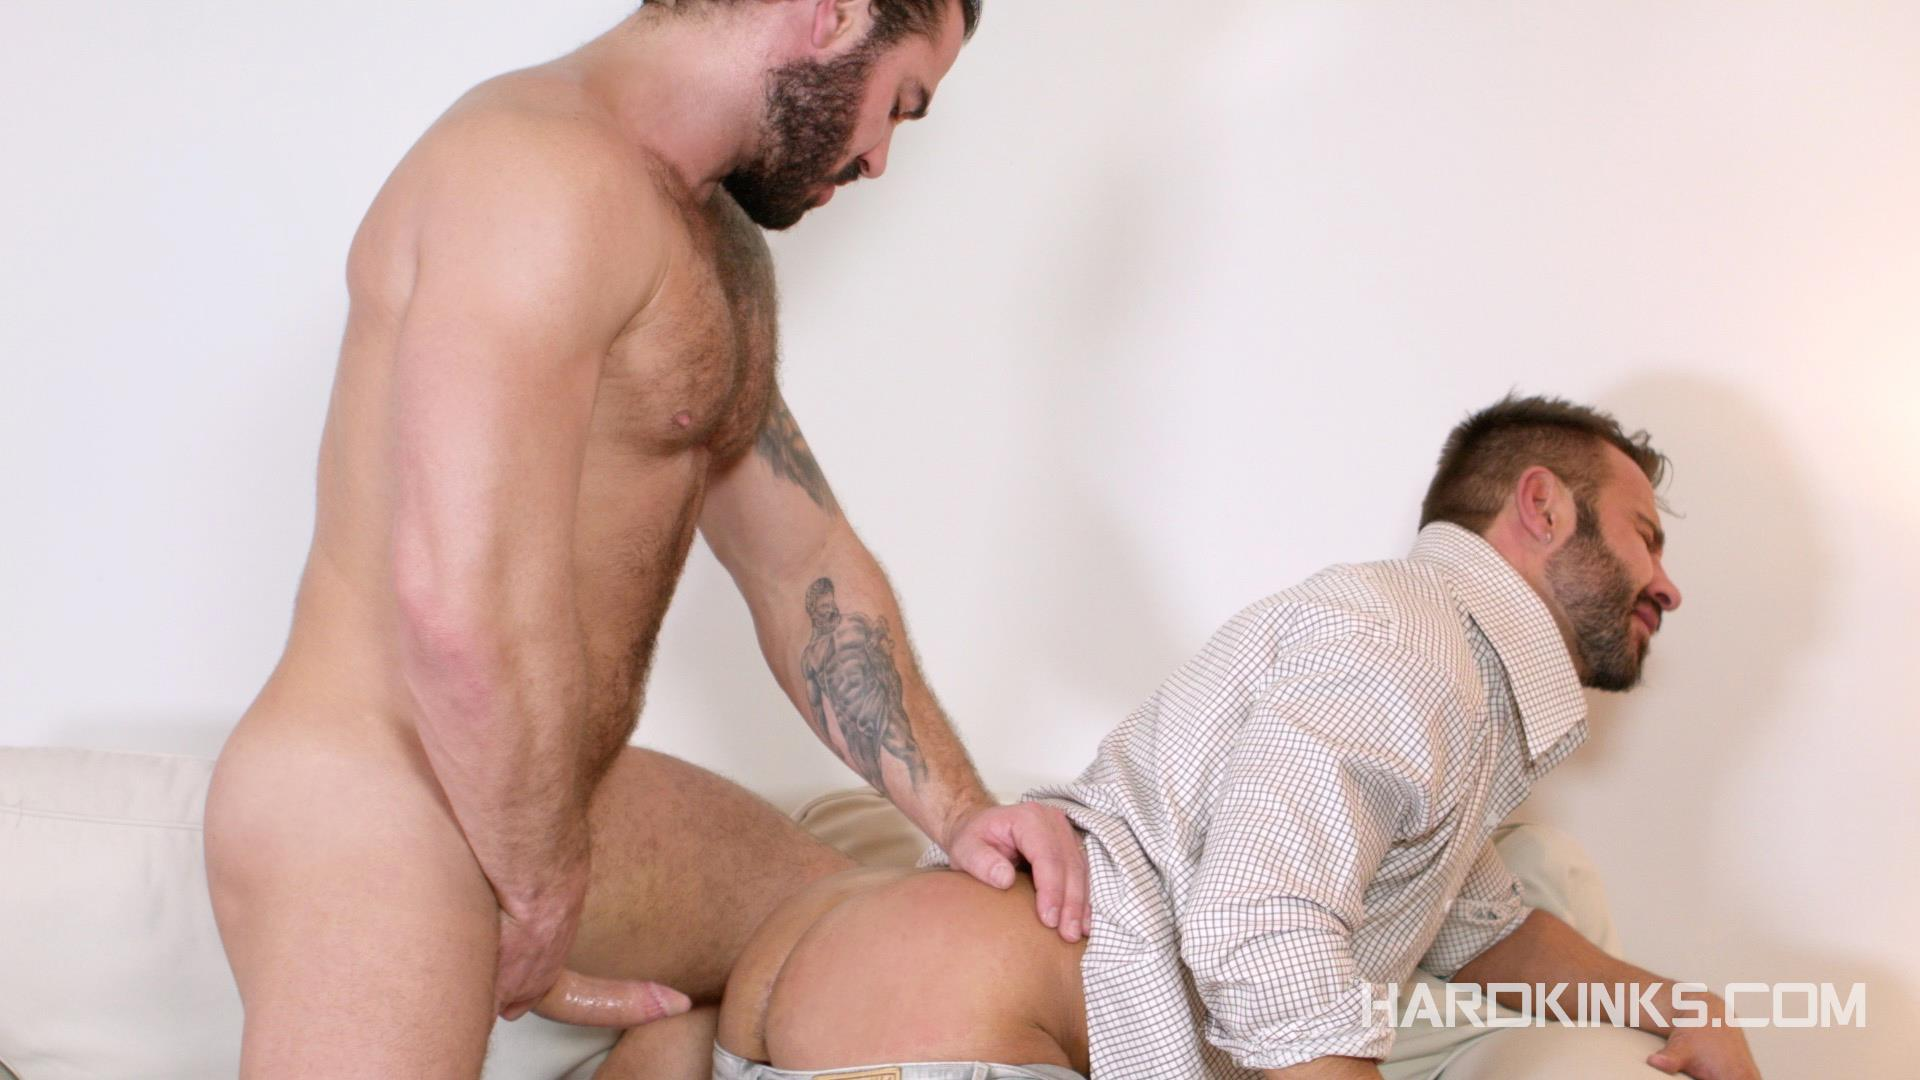 Hardkinks Jessy Ares and Martin Mazza Hairy Alpha Male Amateur Gay Porn 11